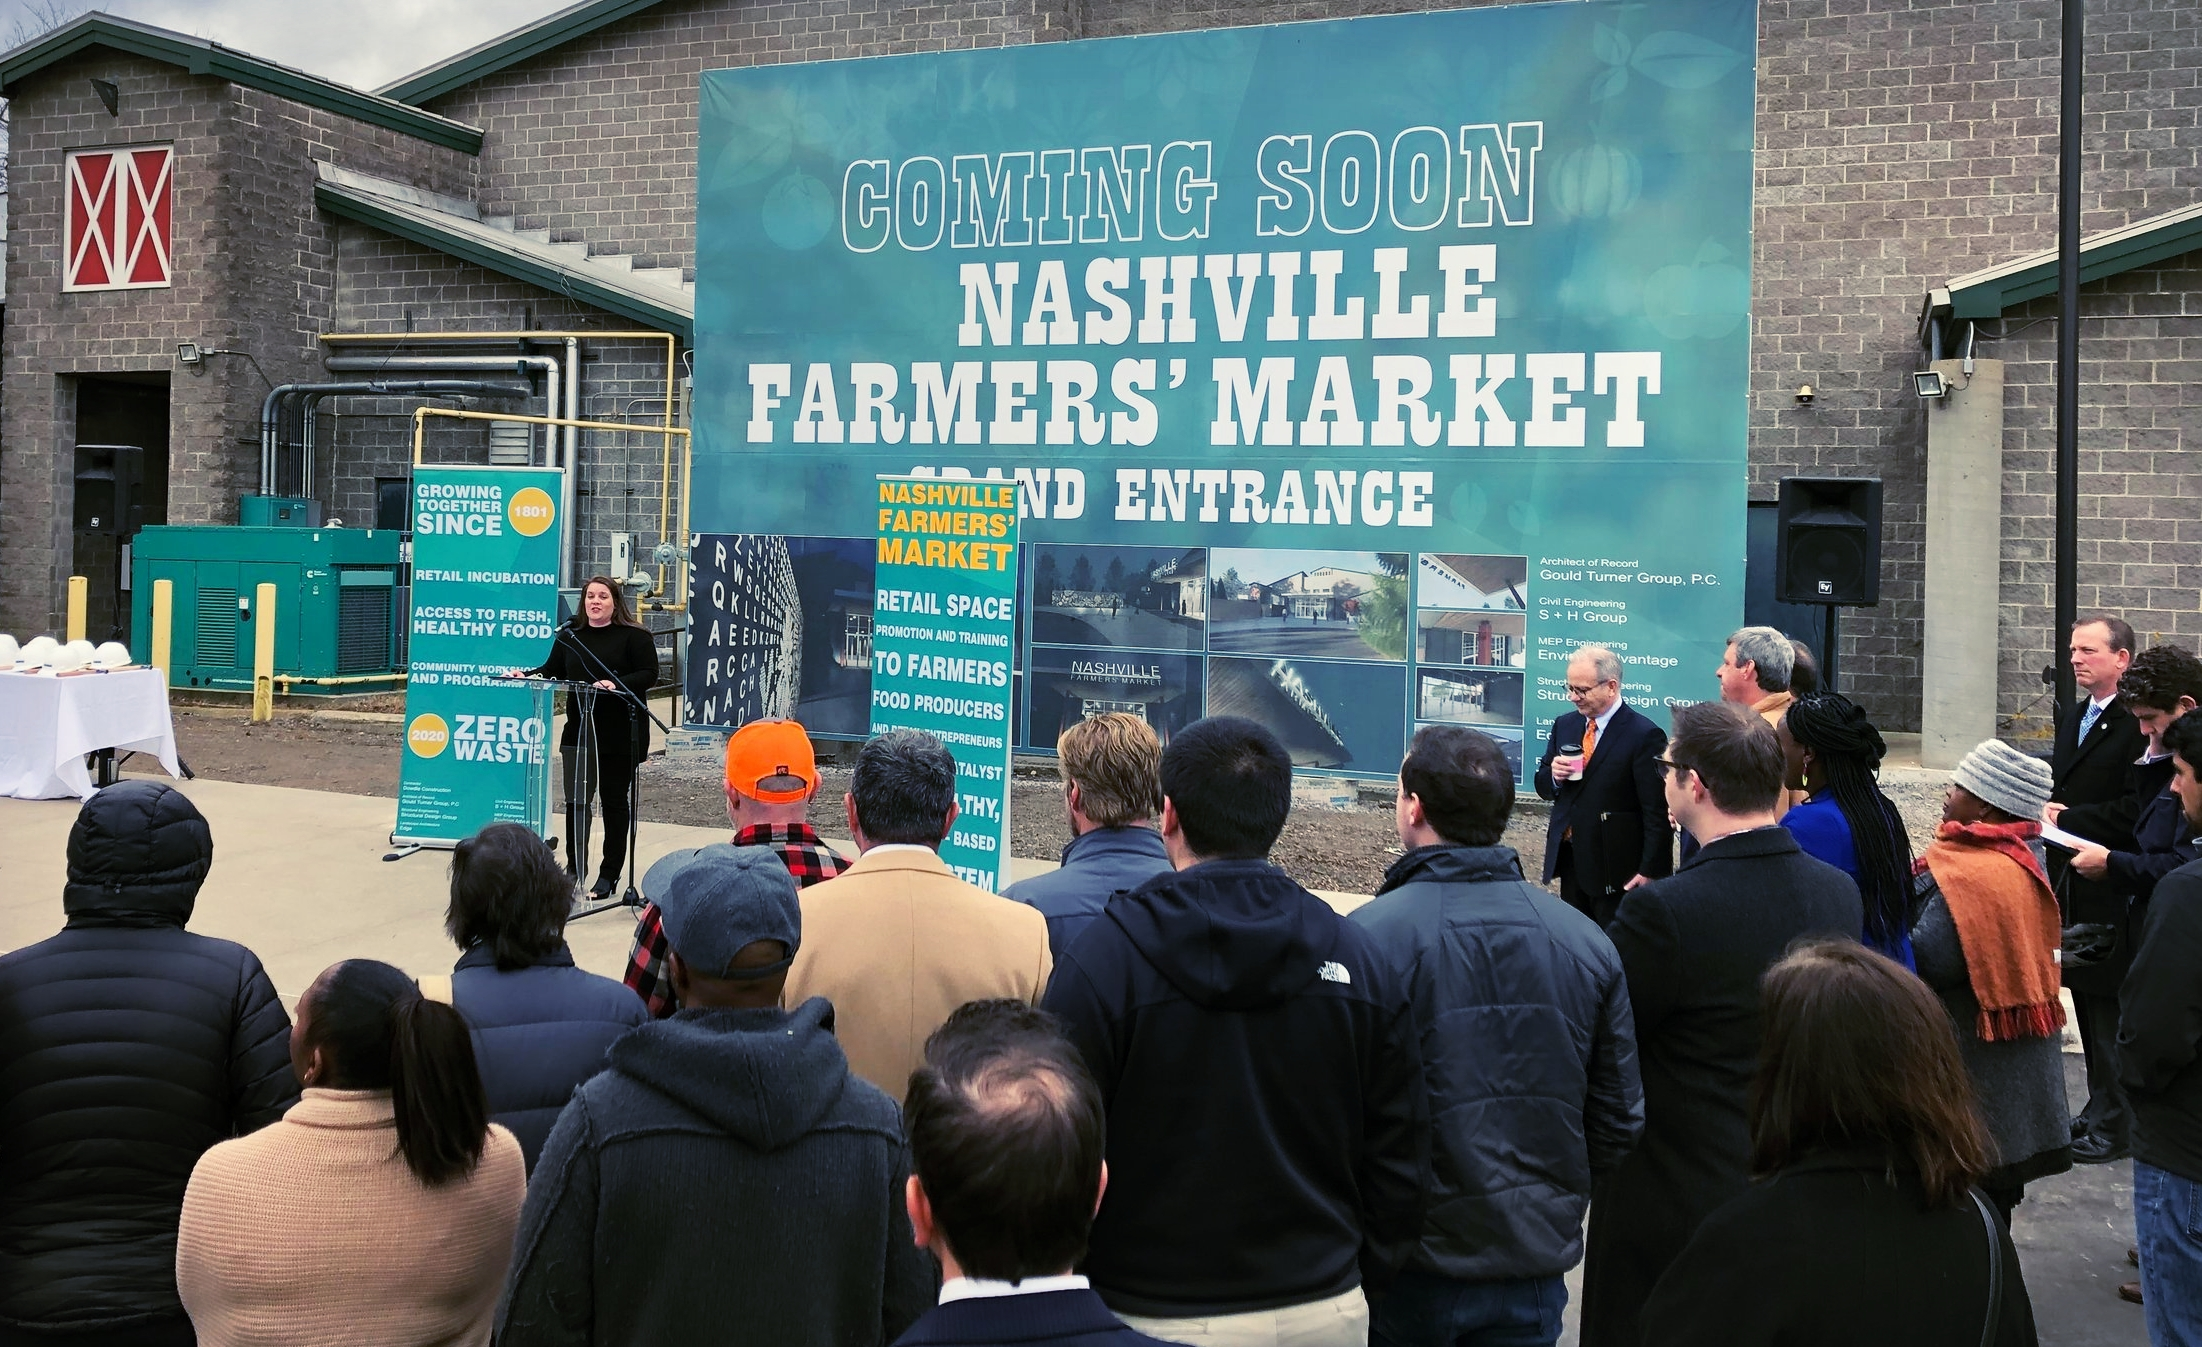 """""""Just like the entrepreneurs that operate here, the Market has and continues to be resilient and innovative,"""" Tasha Kennard, executive director of the Nashville Farmers' Market, told the crowd at this morning's event that kicked off a major renovation project. """"This is an exciting time at the Market and we gather today to celebrate upcoming renovations and share our efforts to support more farmers, artisans and small businesses in our community."""" Nashville Mayor David Briley waits for his chance to speak just right of center."""